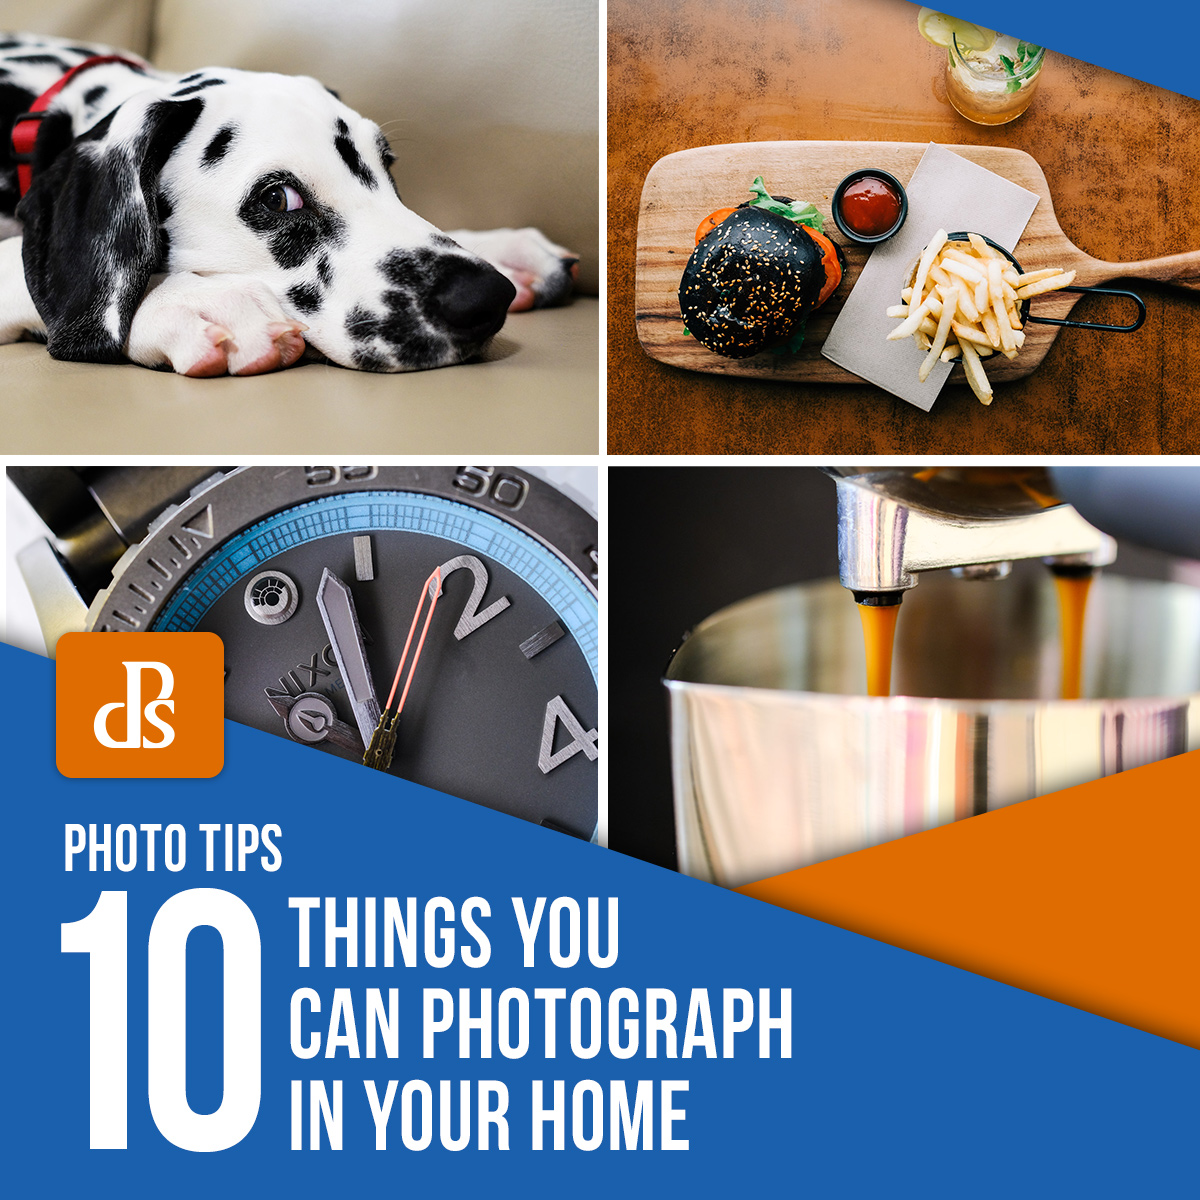 https://i1.wp.com/digital-photography-school.com/wp-content/uploads/2020/03/dps-10-things-you-can-photograph-at-home.jpg?ssl=1